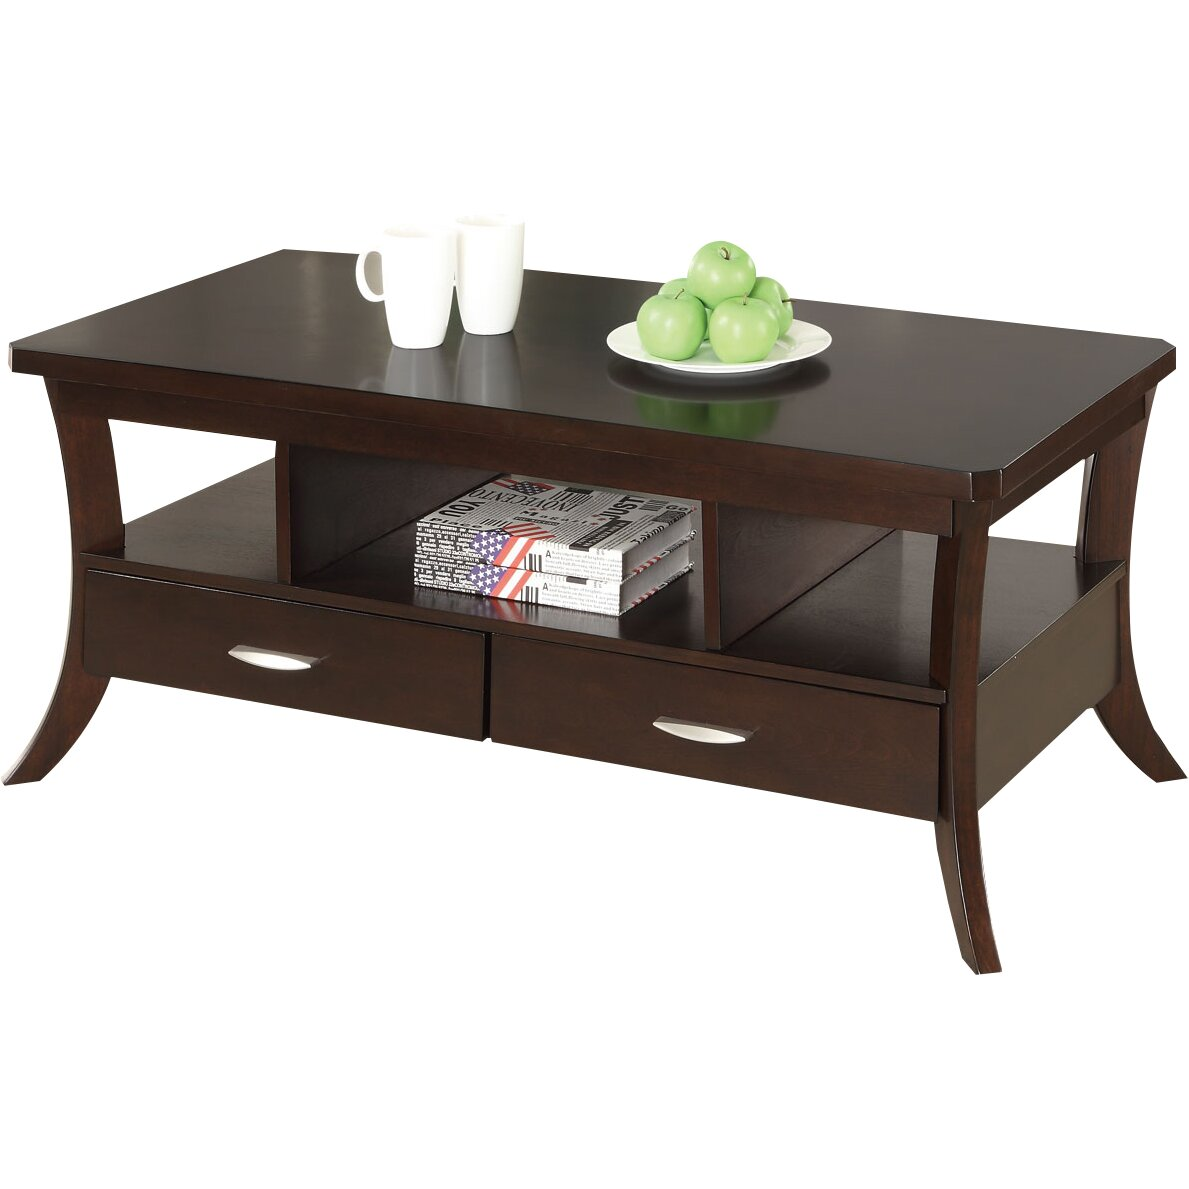 Wildon home coffee table reviews wayfair for Coffee tables zara home